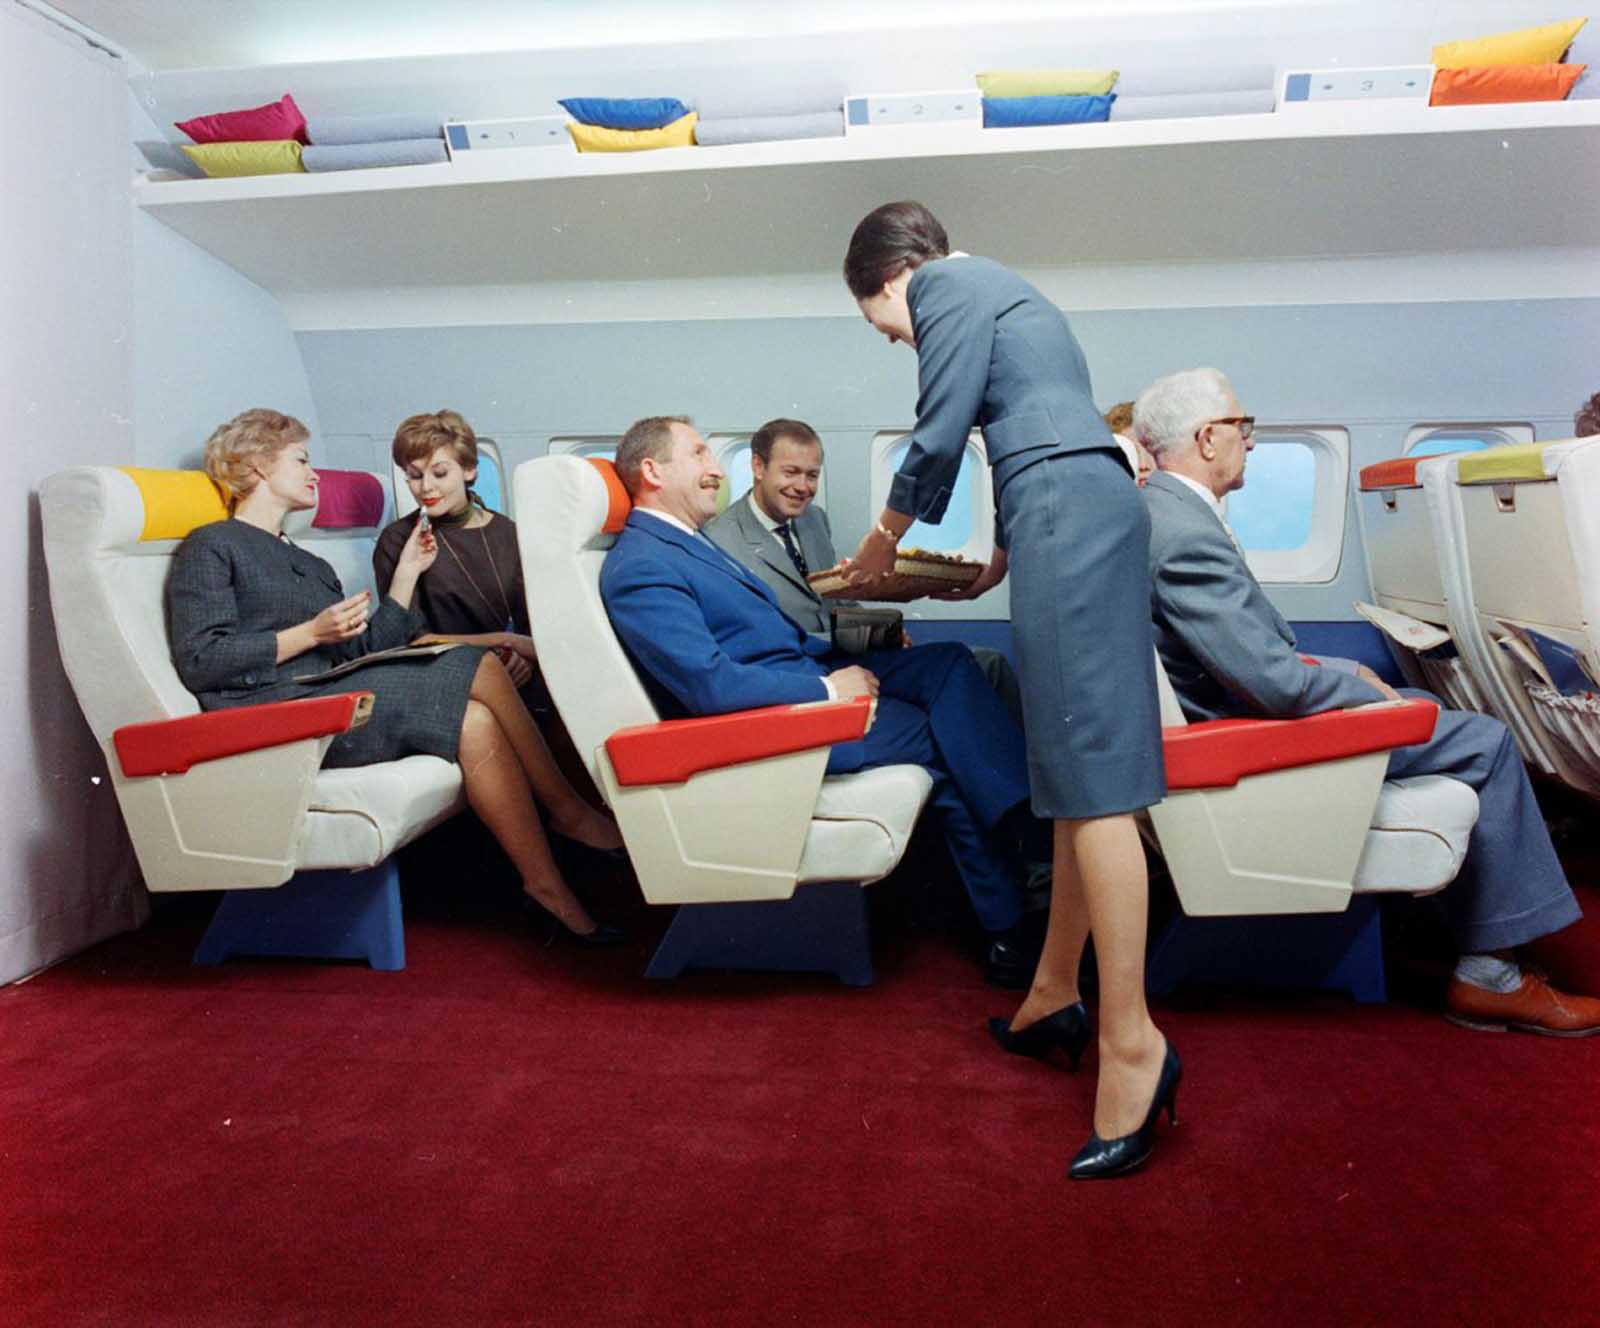 As airplanes evolved the concept of traveling by air became something of potentially broader appeal, and the airlines acted to make air travel more comfortable and more genteel.